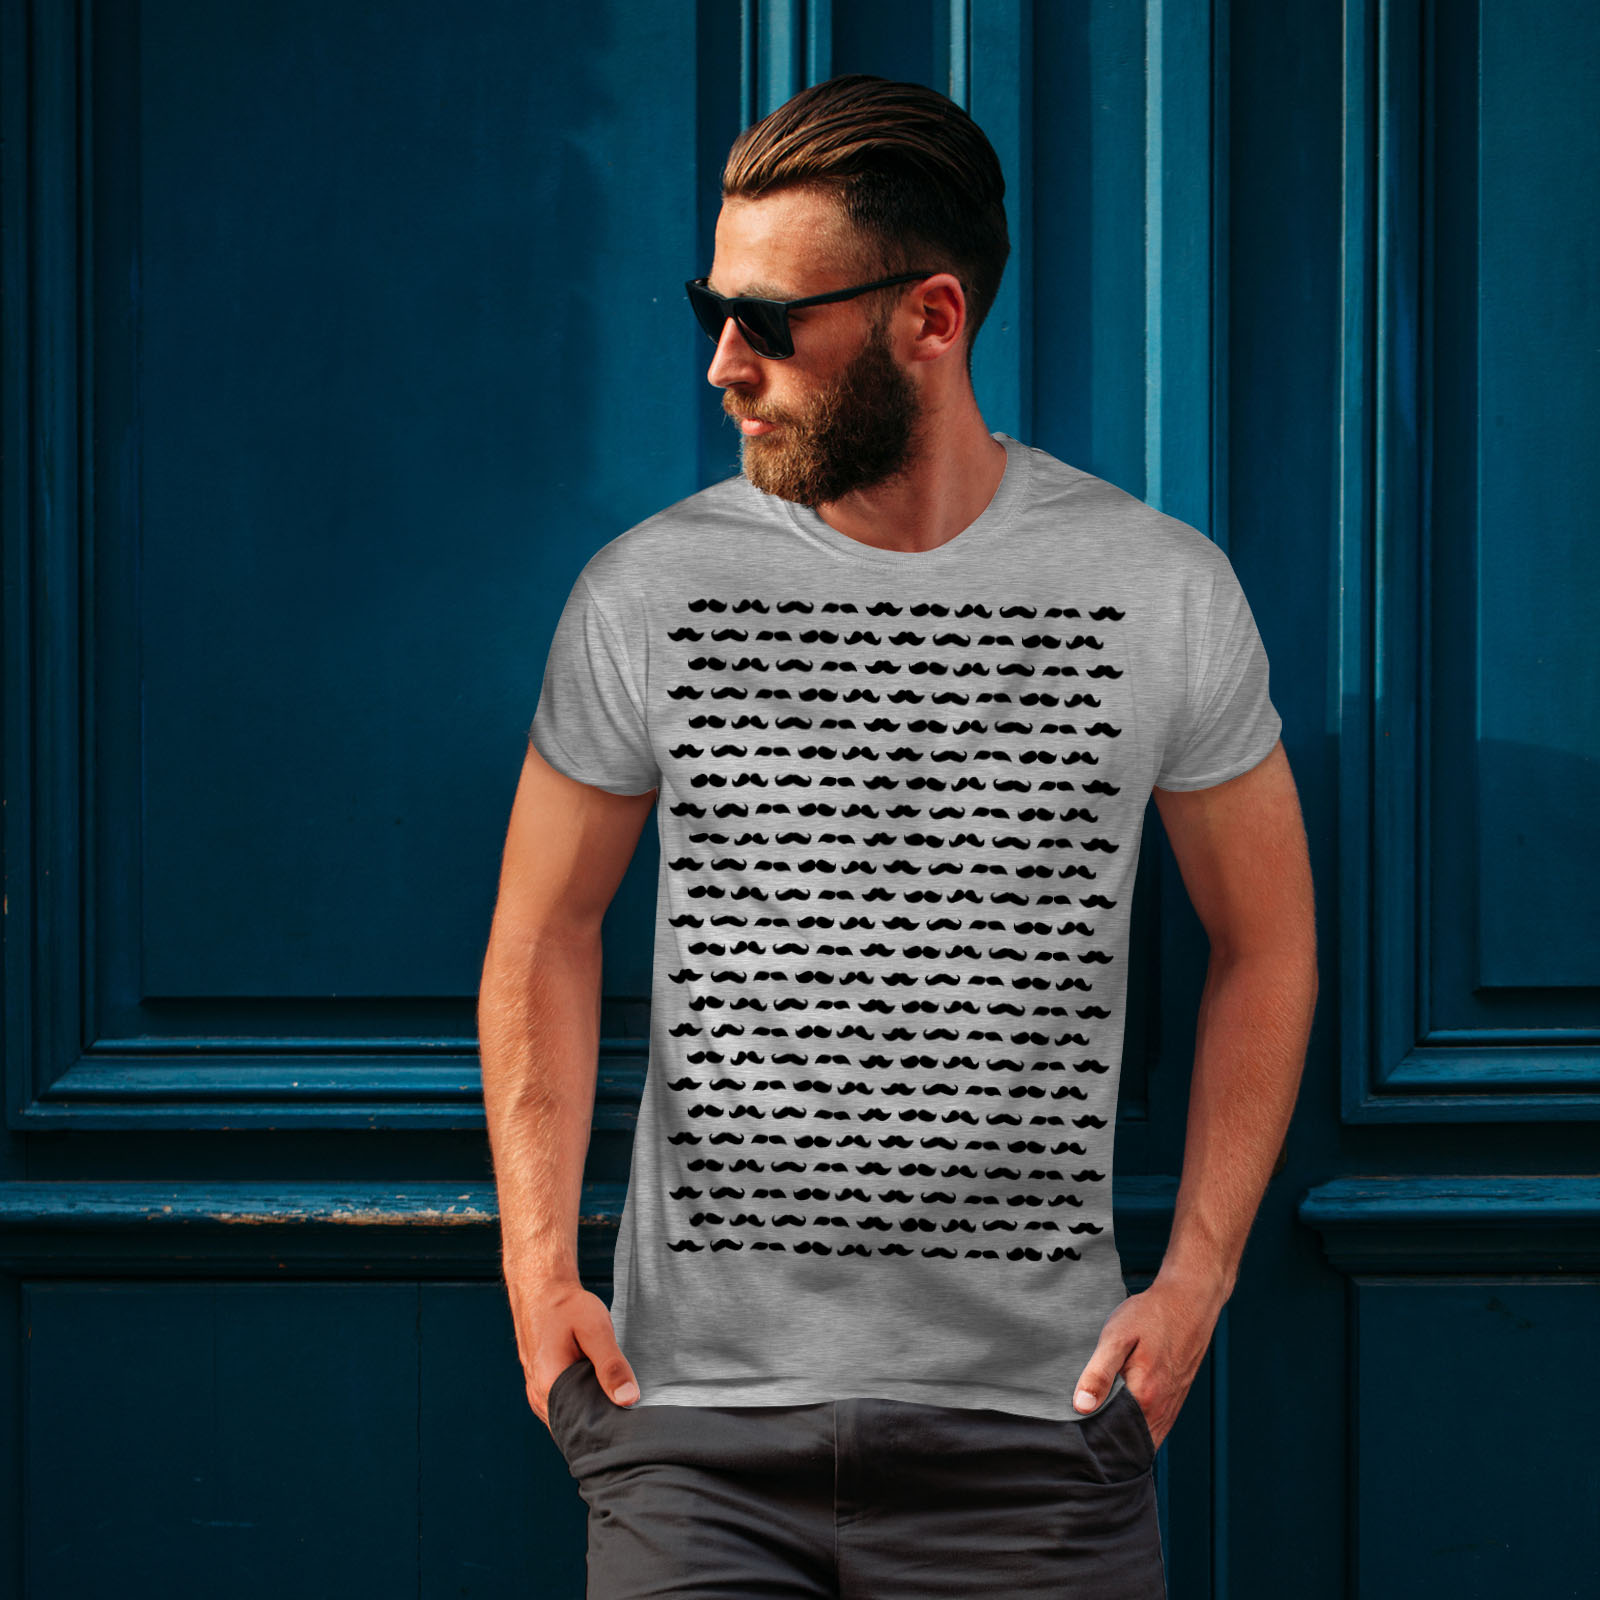 Wellcoda-Hipster-Moustache-Mens-T-shirt-Pattern-Graphic-Design-Printed-Tee